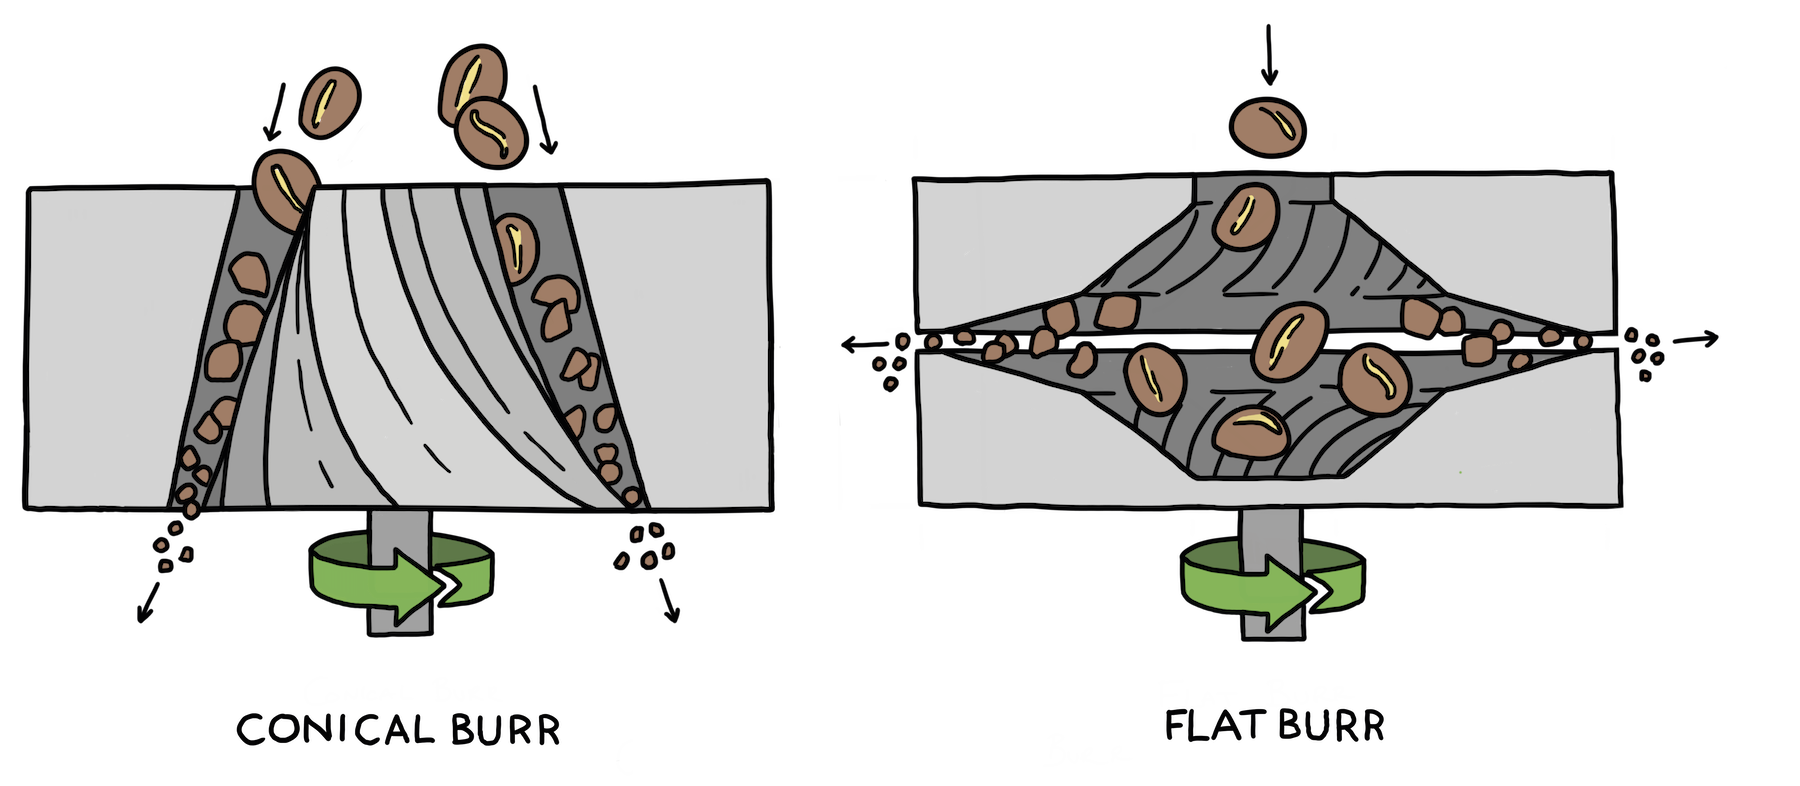 An illustration showing cross sections of both flat burr and conical burr grinders.